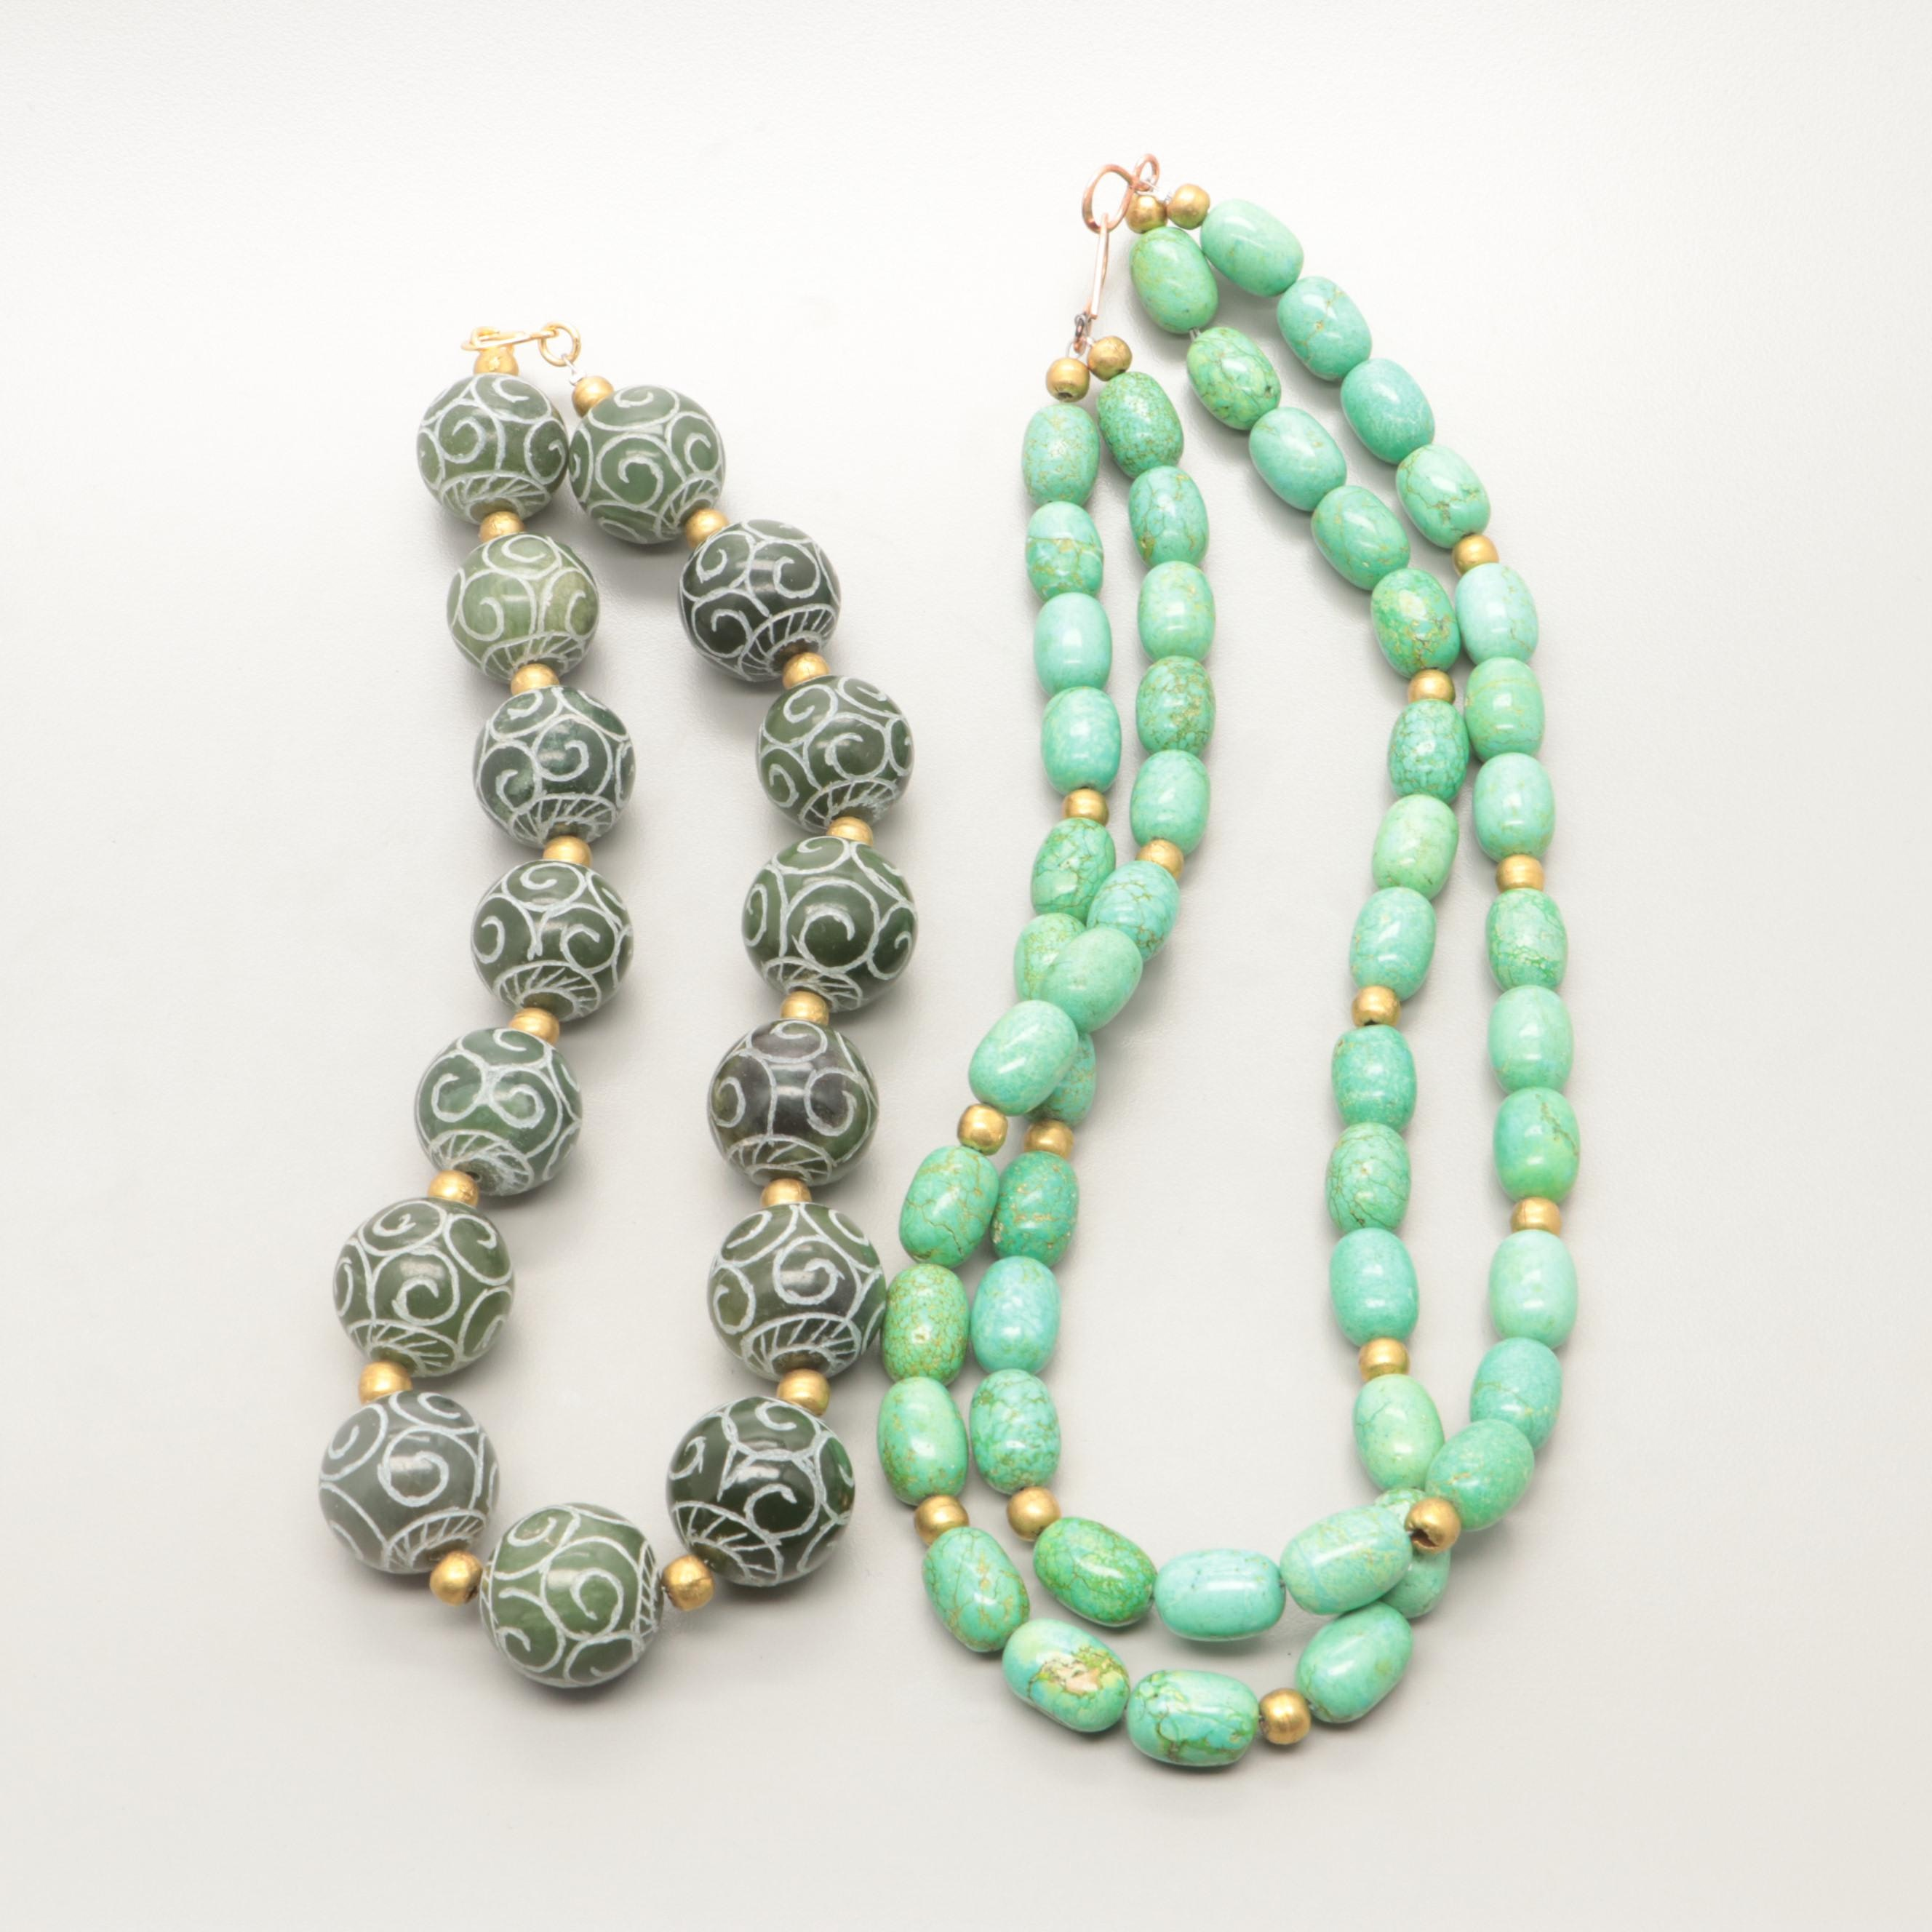 Designed Dyed Magnesite and Calcite Barrel Bead Necklaces